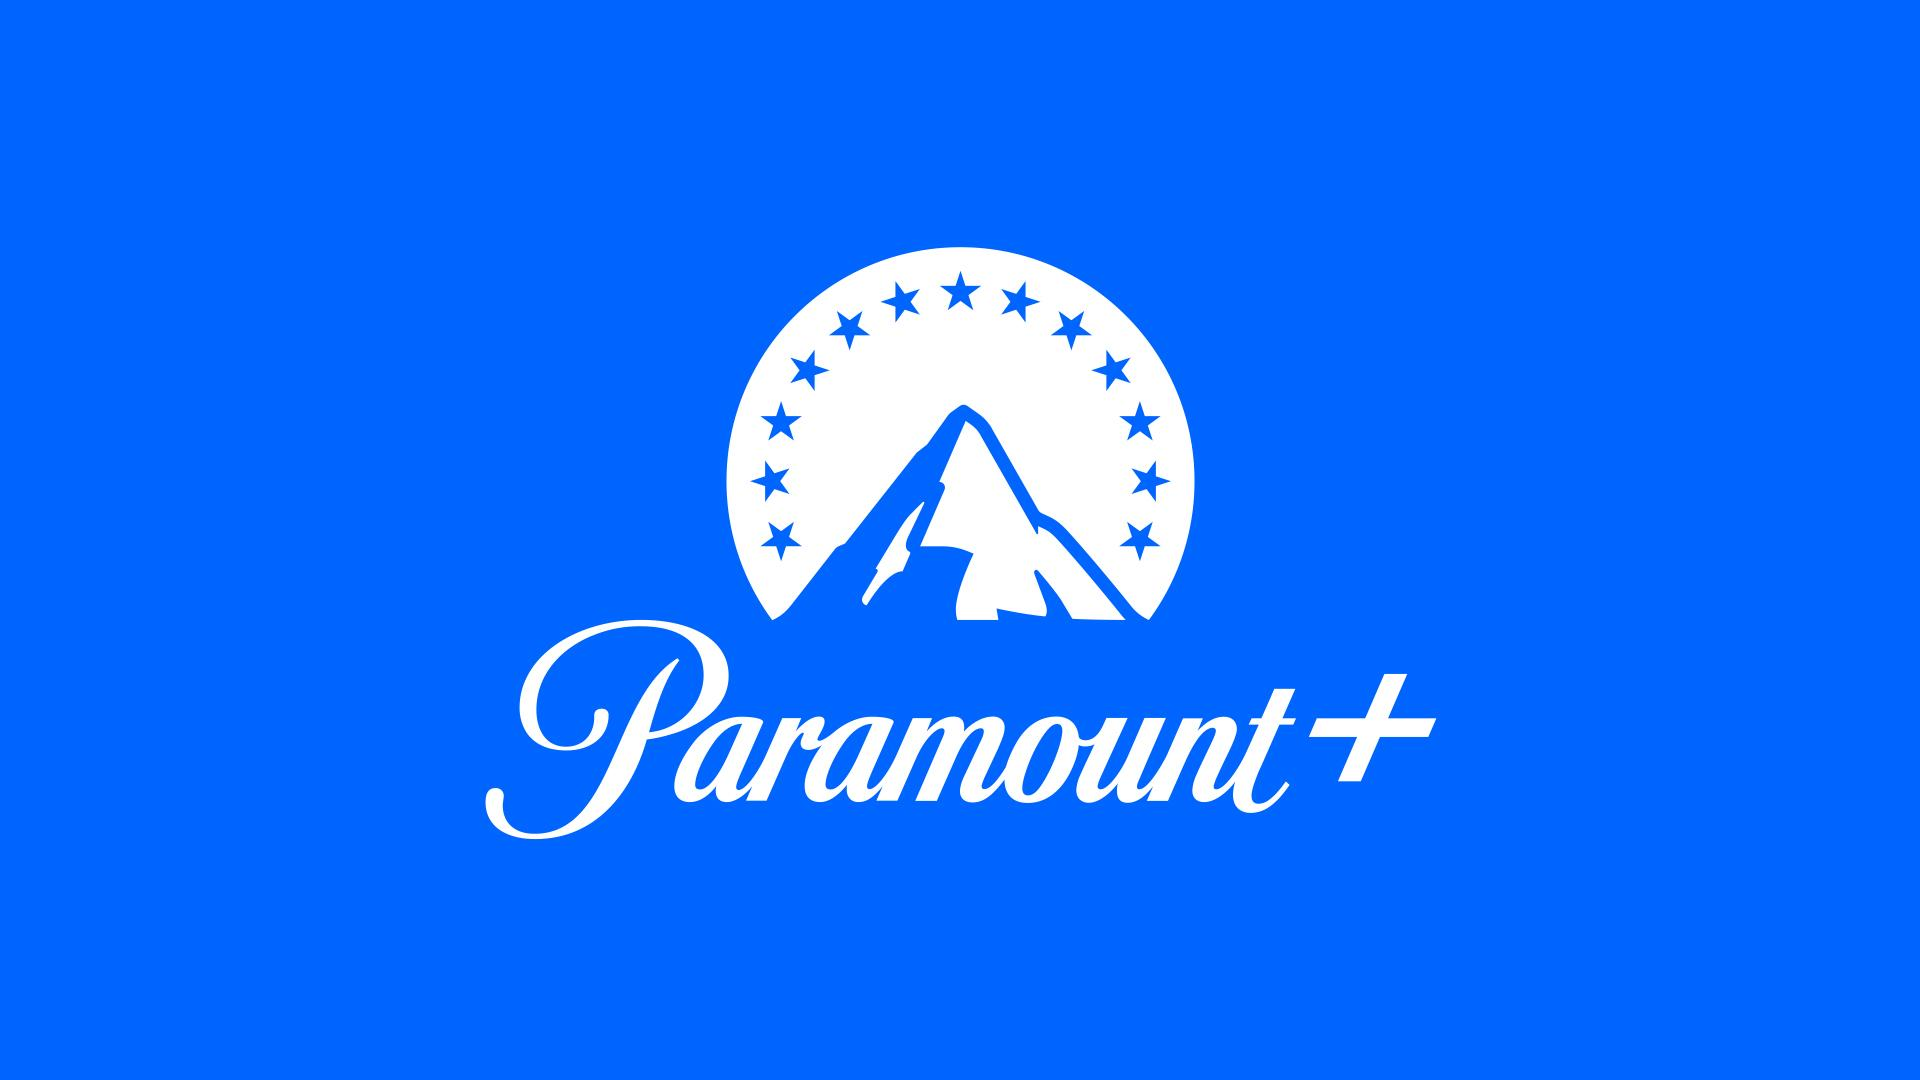 Paramount Plus streaming service